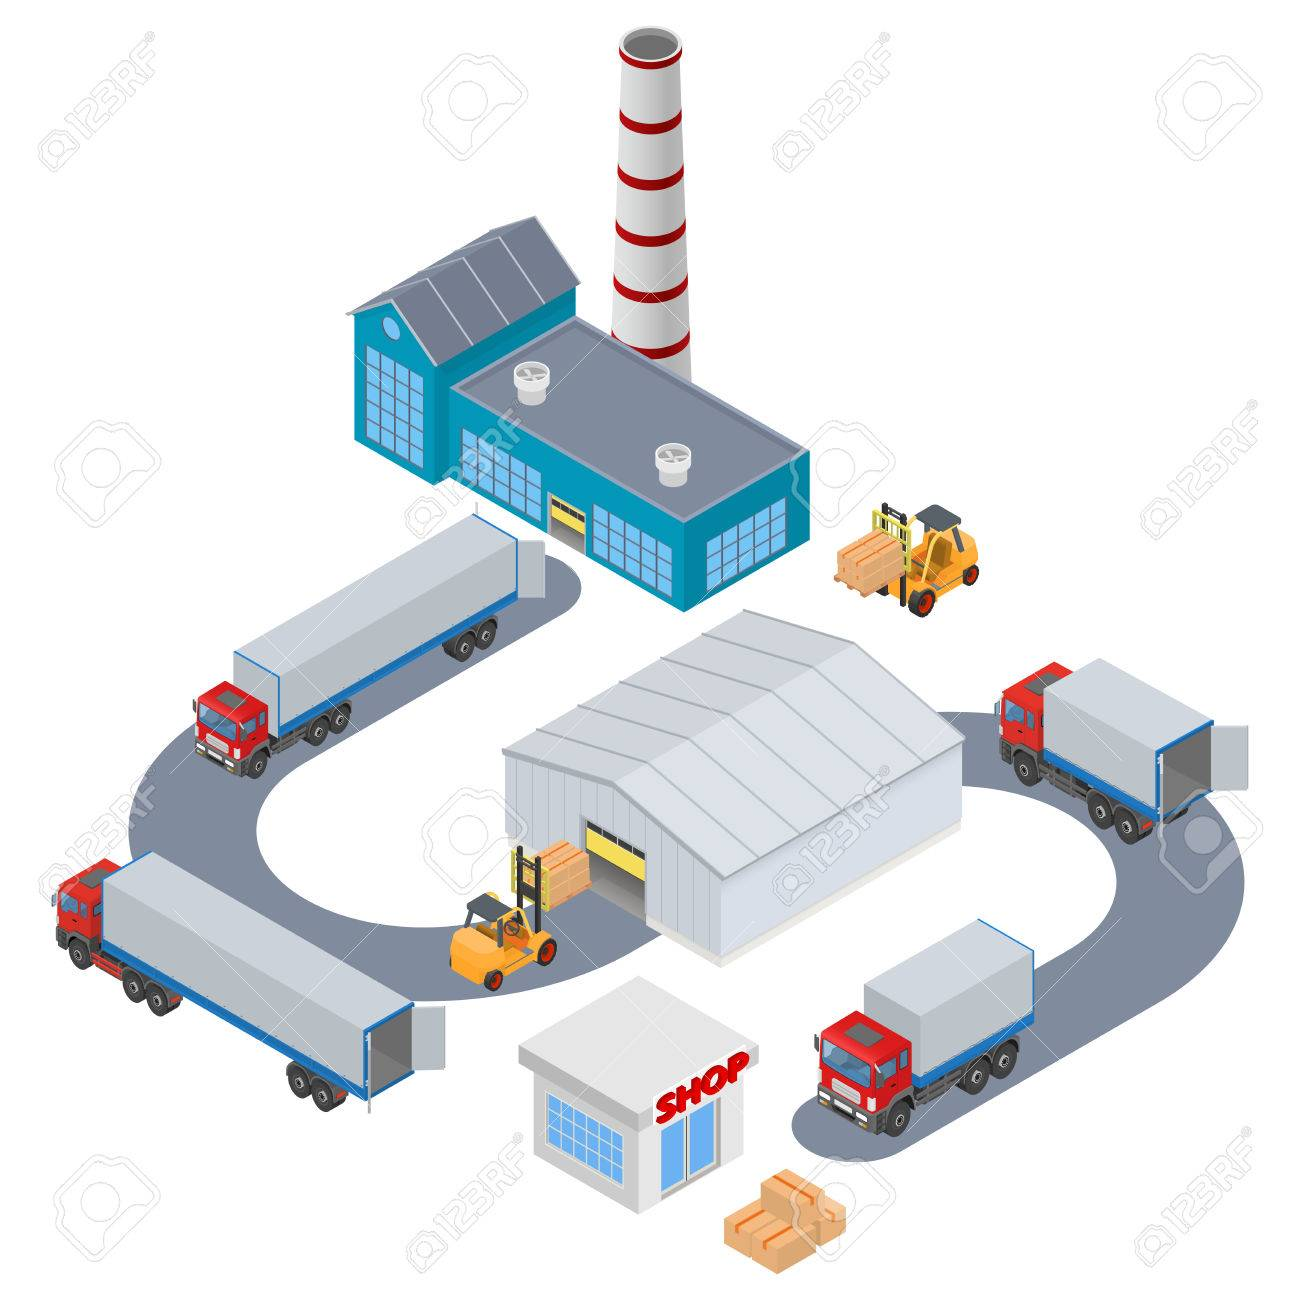 Manufacture Logistic - Factory, warehouse, shop, truck, forklift. Isometric illustration - 52408834